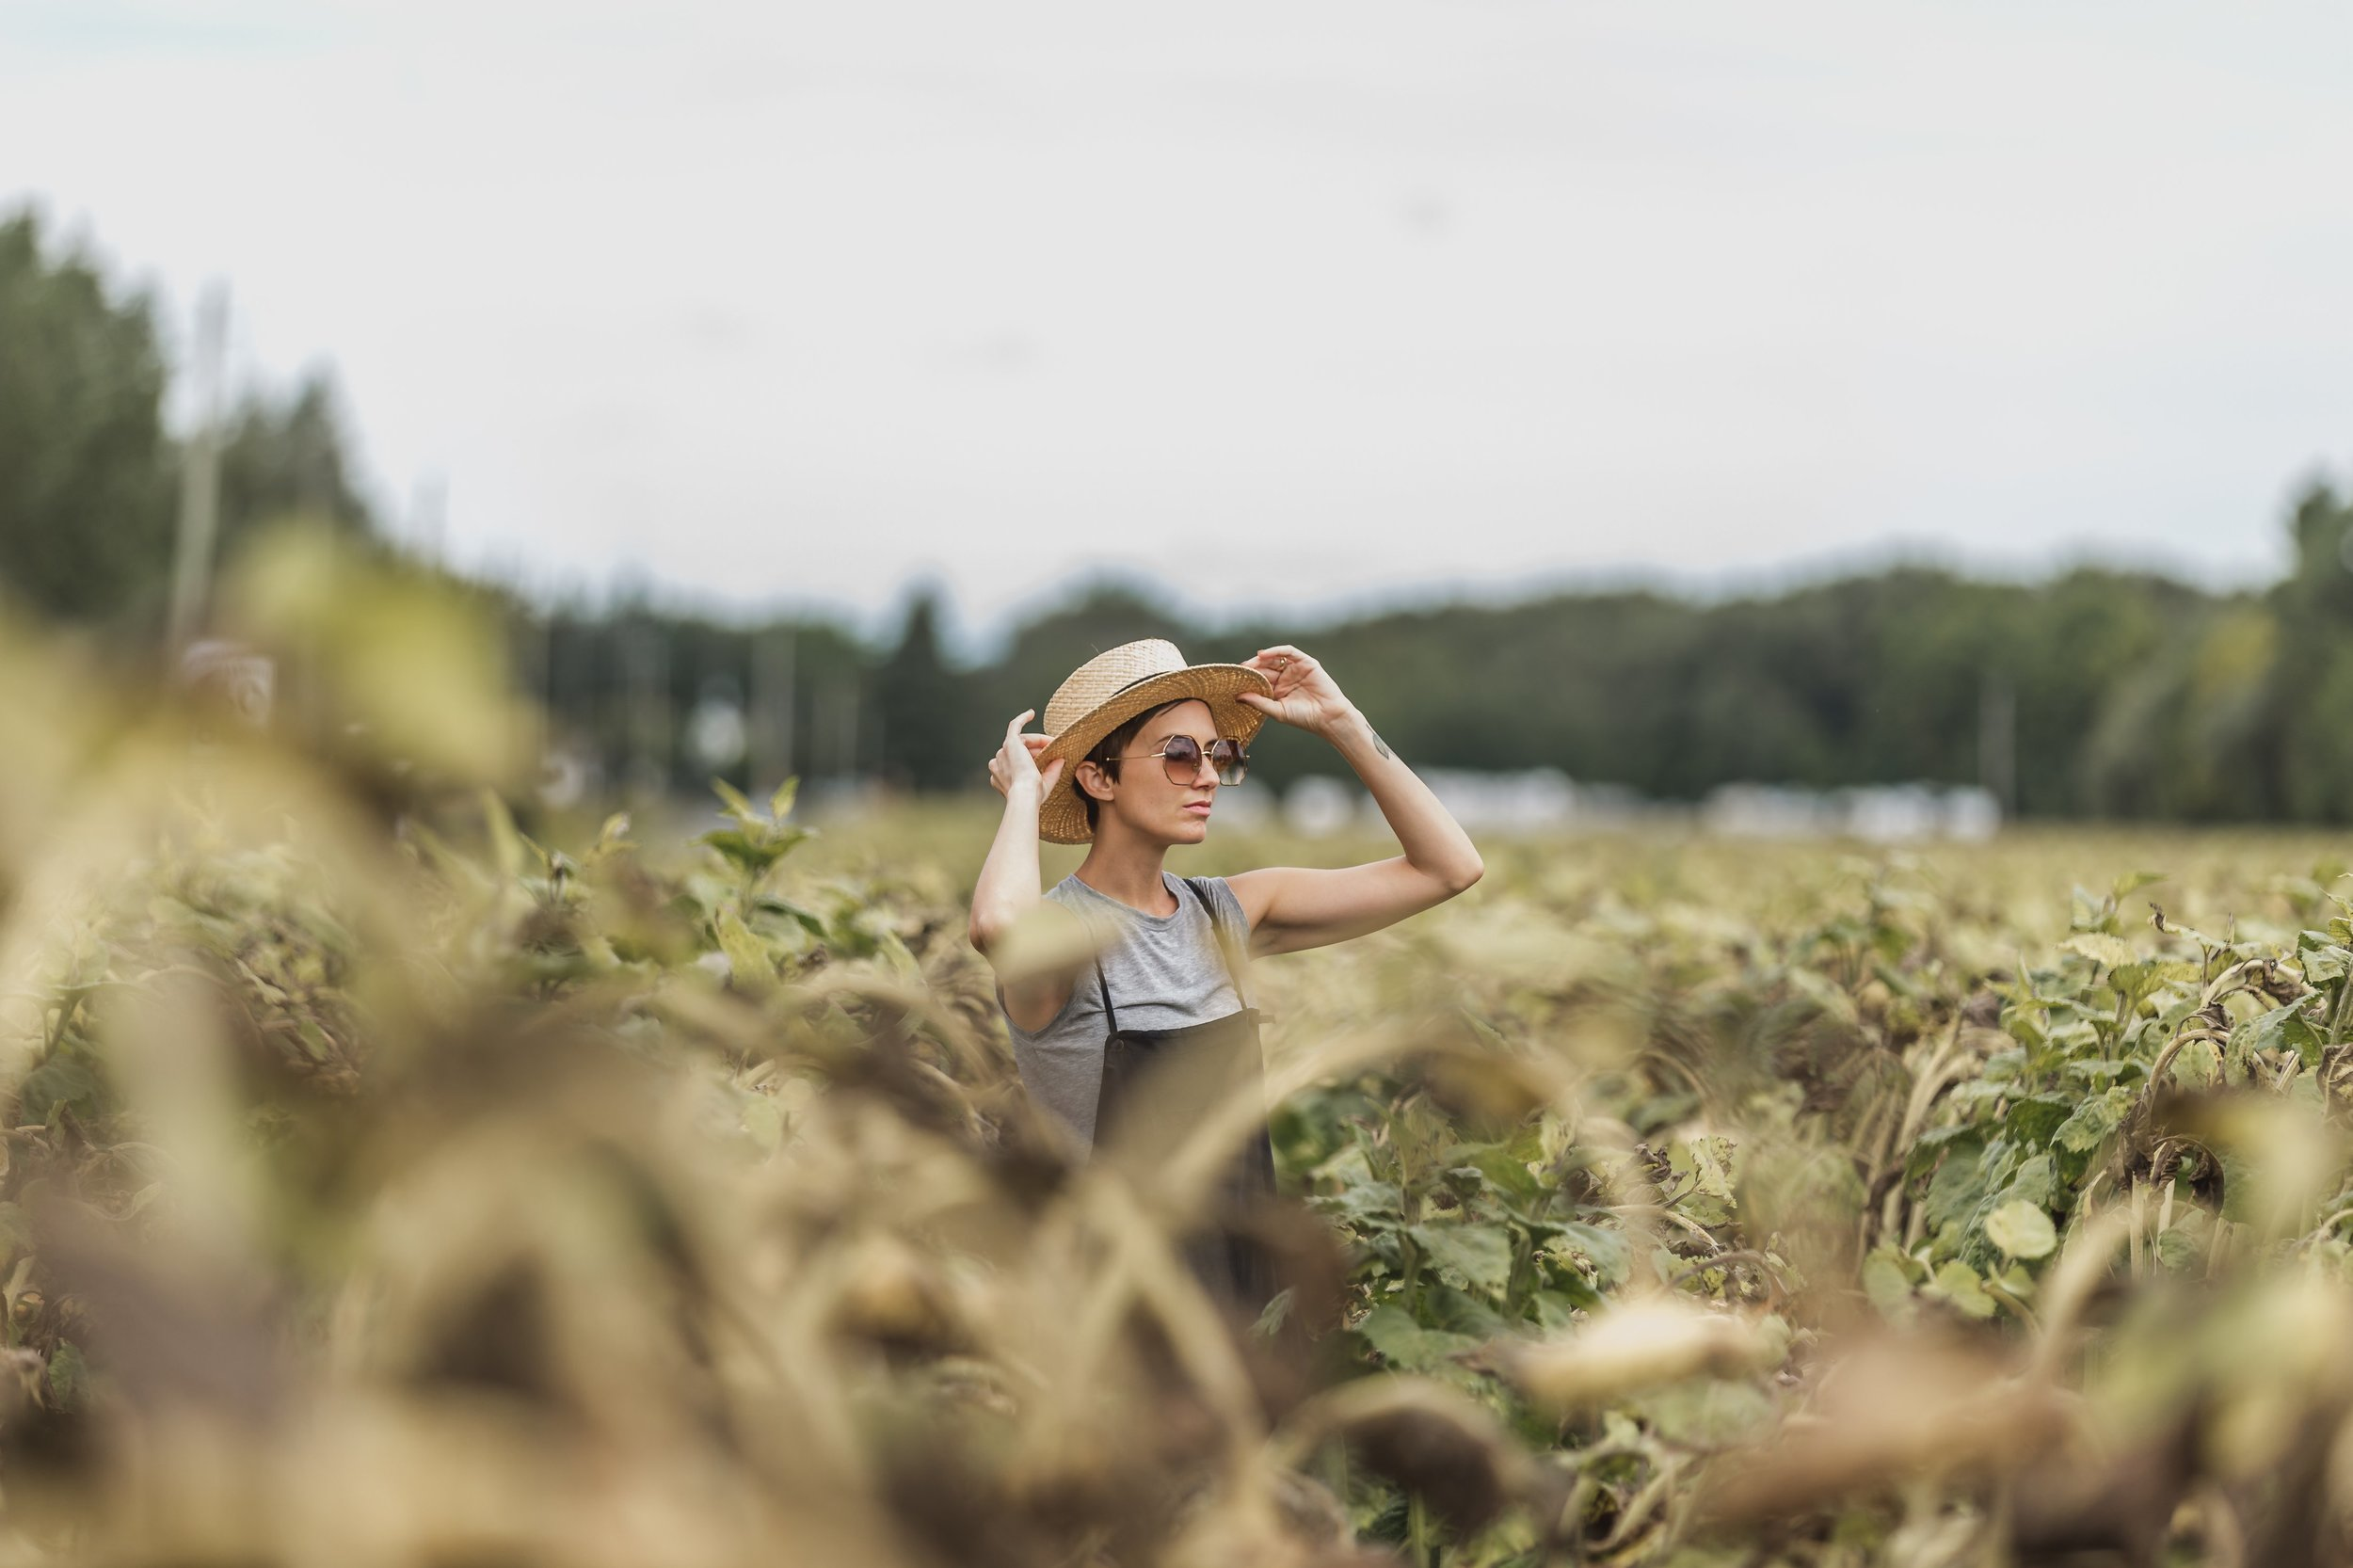 woman-holding-hat-while-standing-in-dried-sunflower-field.jpg